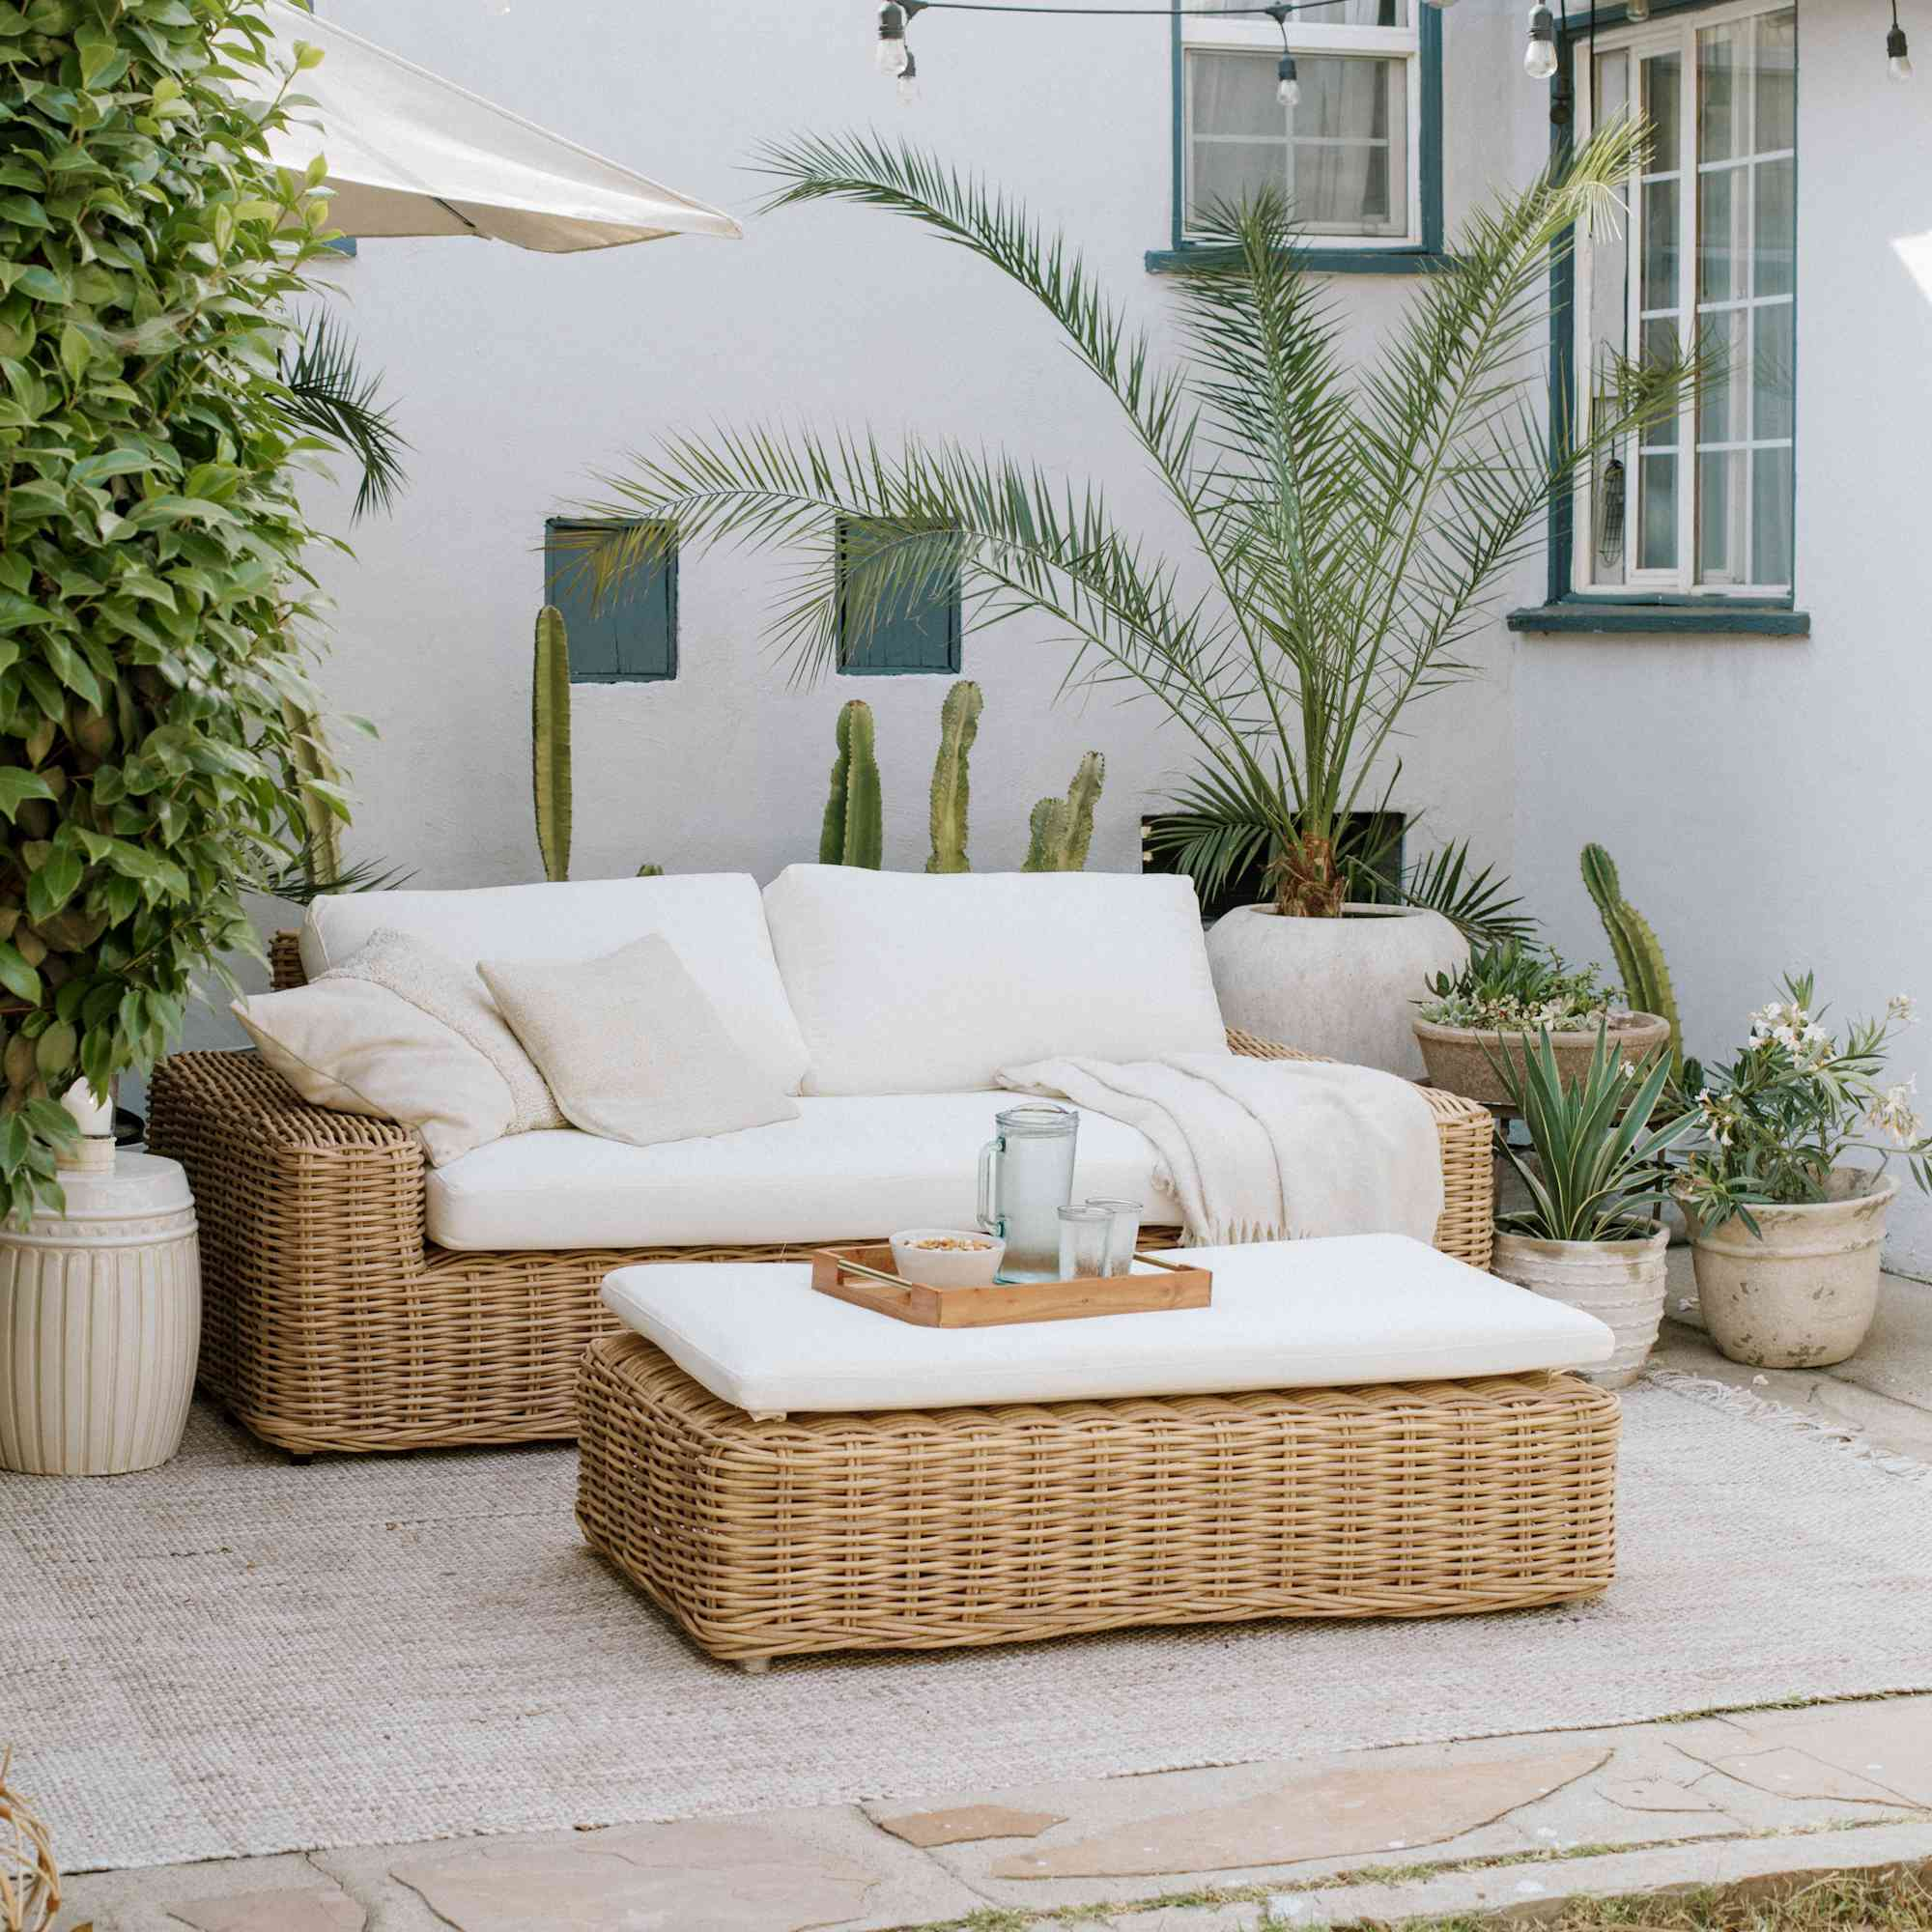 rattan furniture with white cushions adorn this lovely patio, which also features plants and string lights